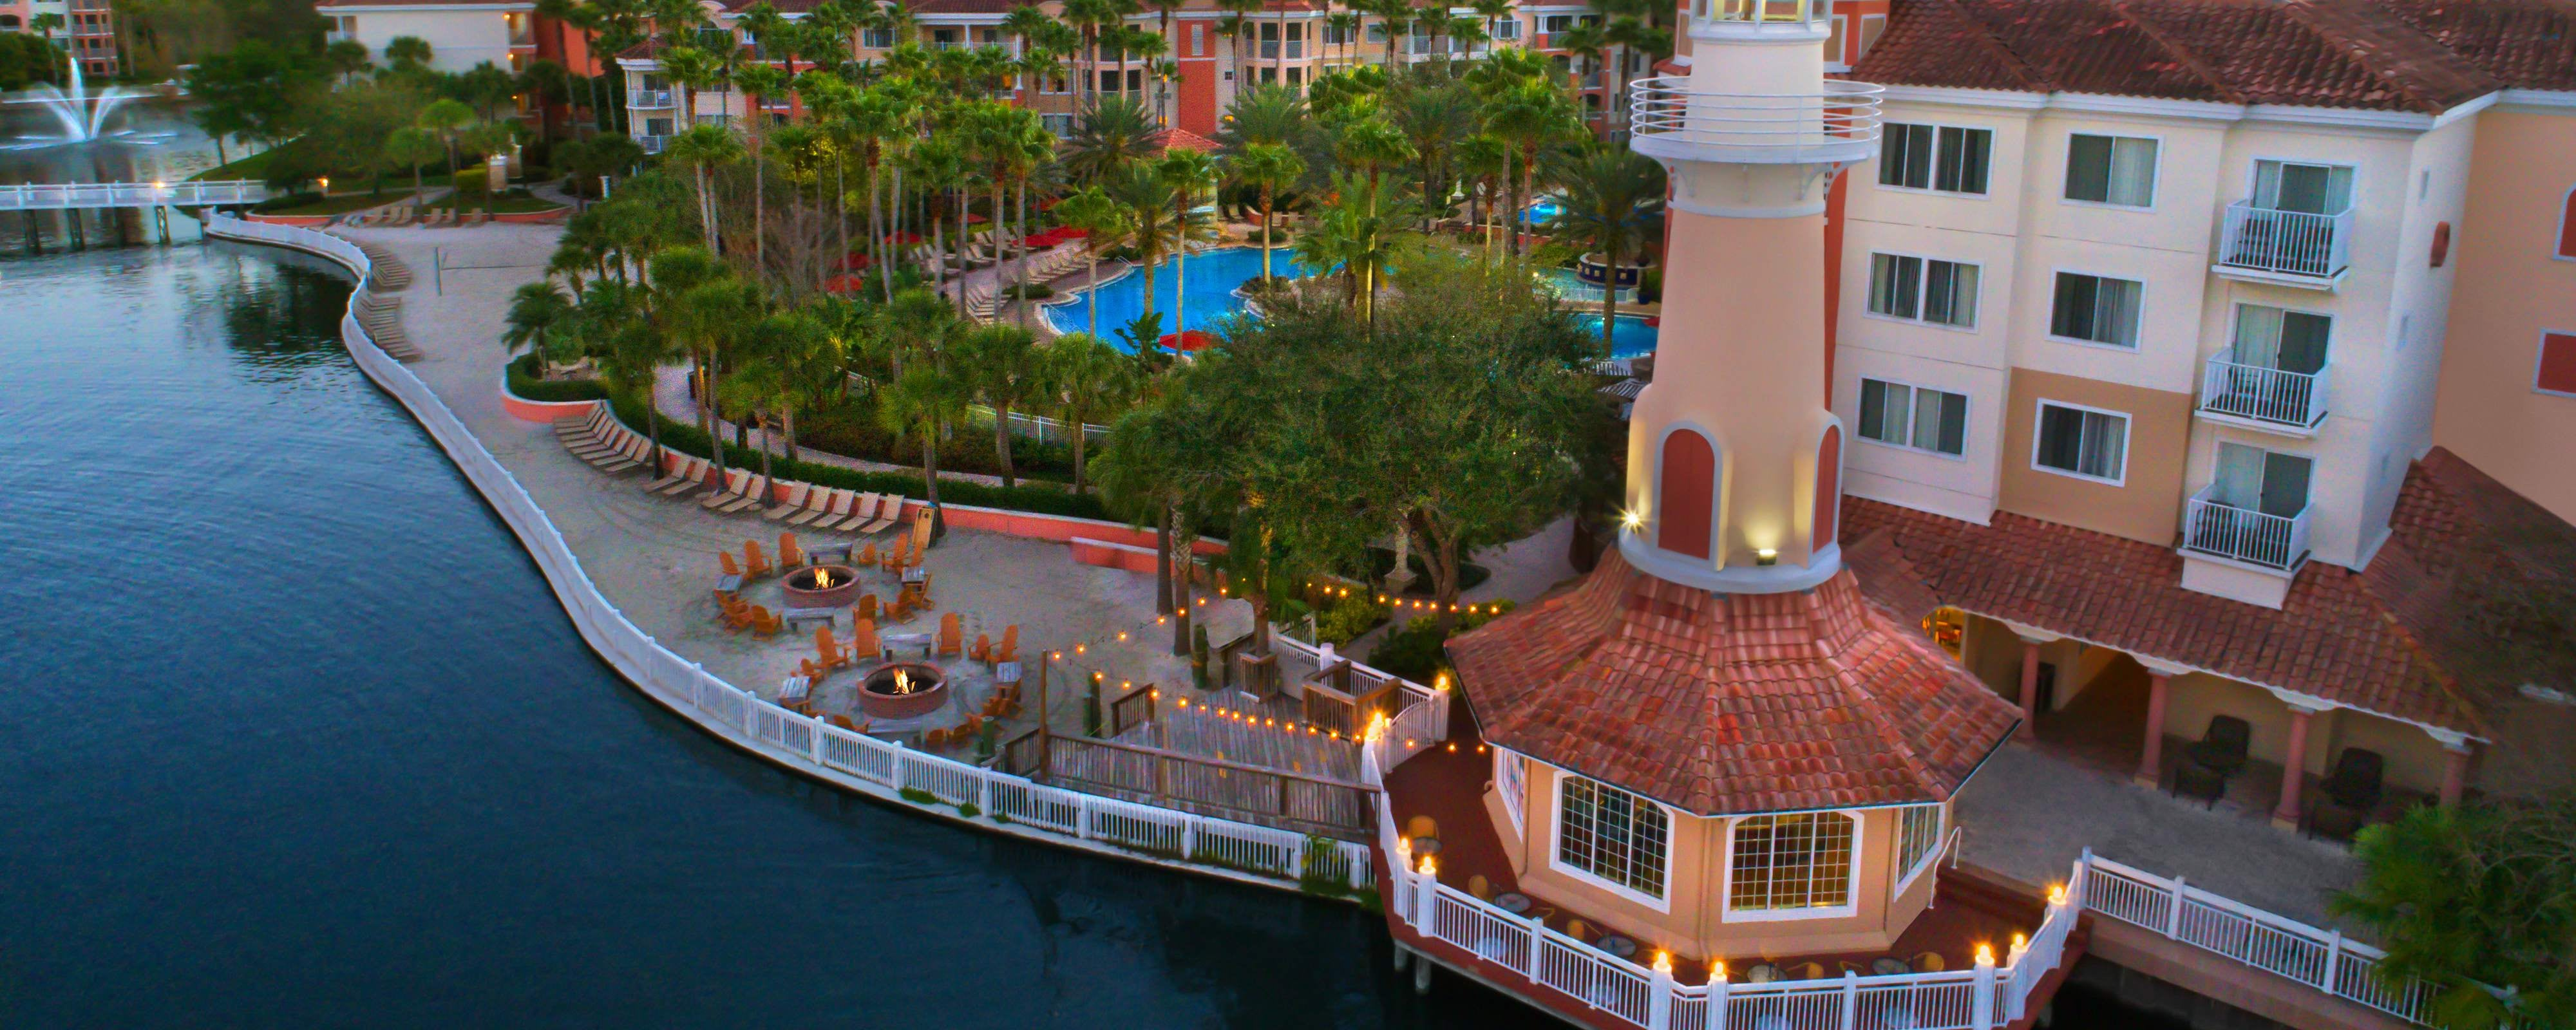 3 bedroom hotels in orlando fl blogs workanyware co uk u2022 rh blogs workanyware co uk